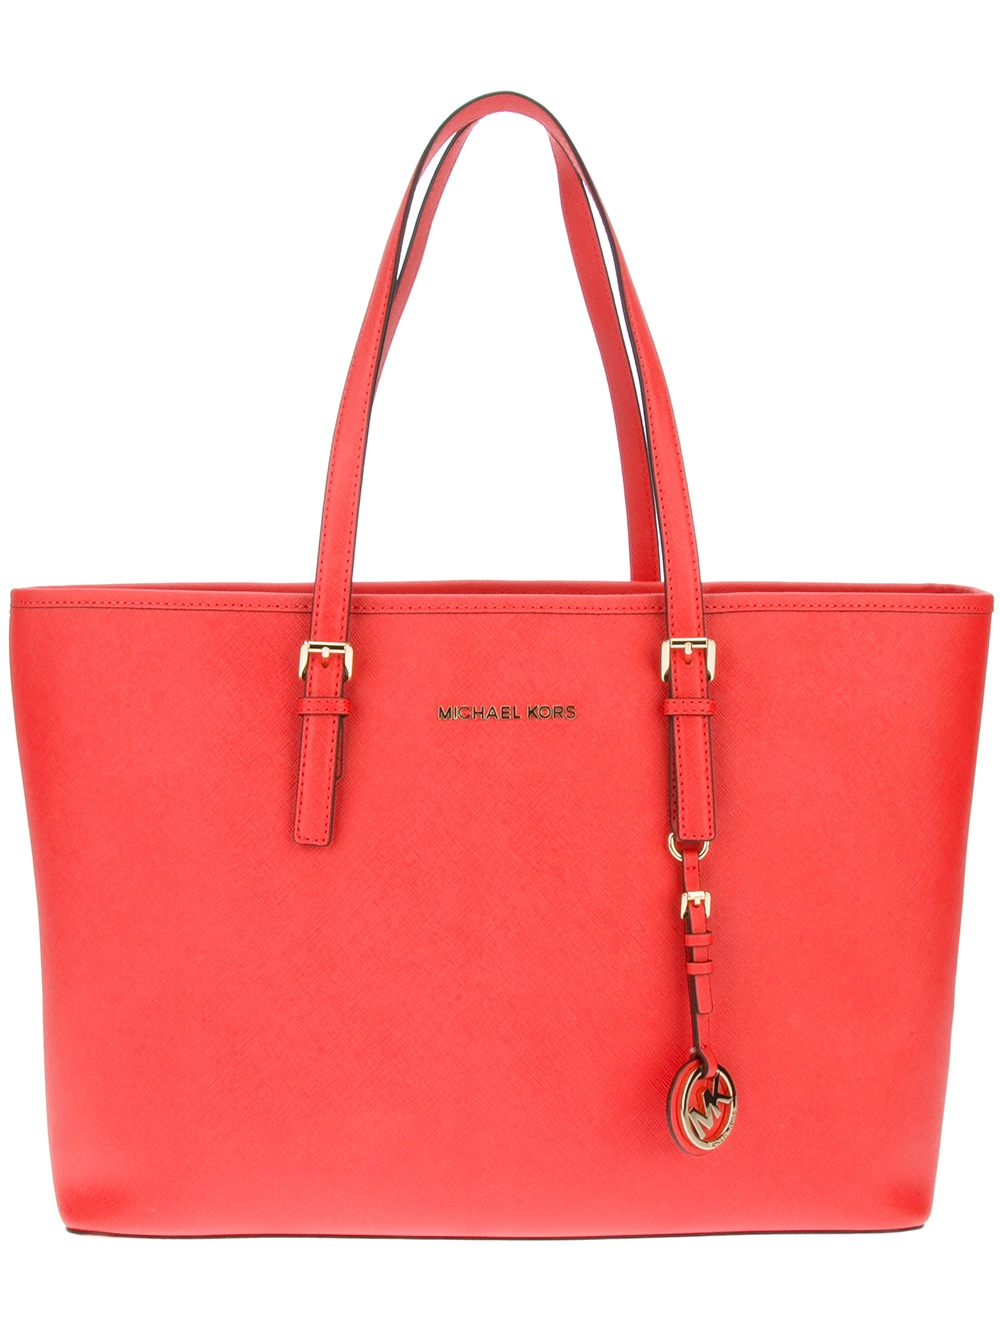 michael michael kors shopper tote in red lyst